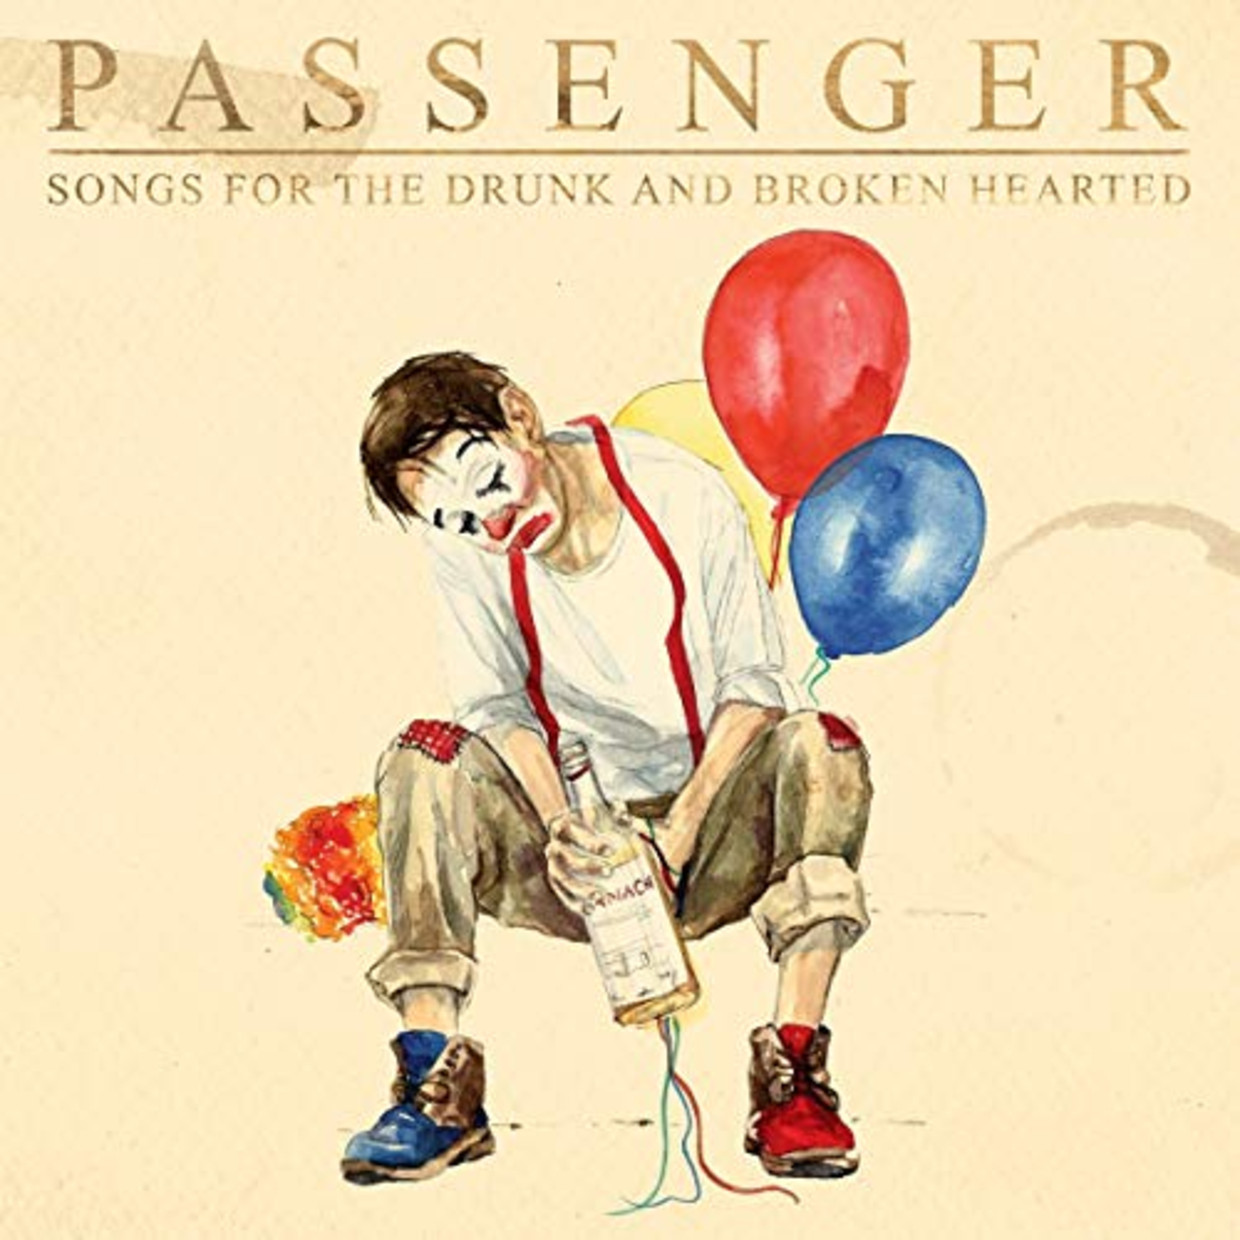 PASSENGER Songs for the Drunk and Broken Hearted Beeld Humo